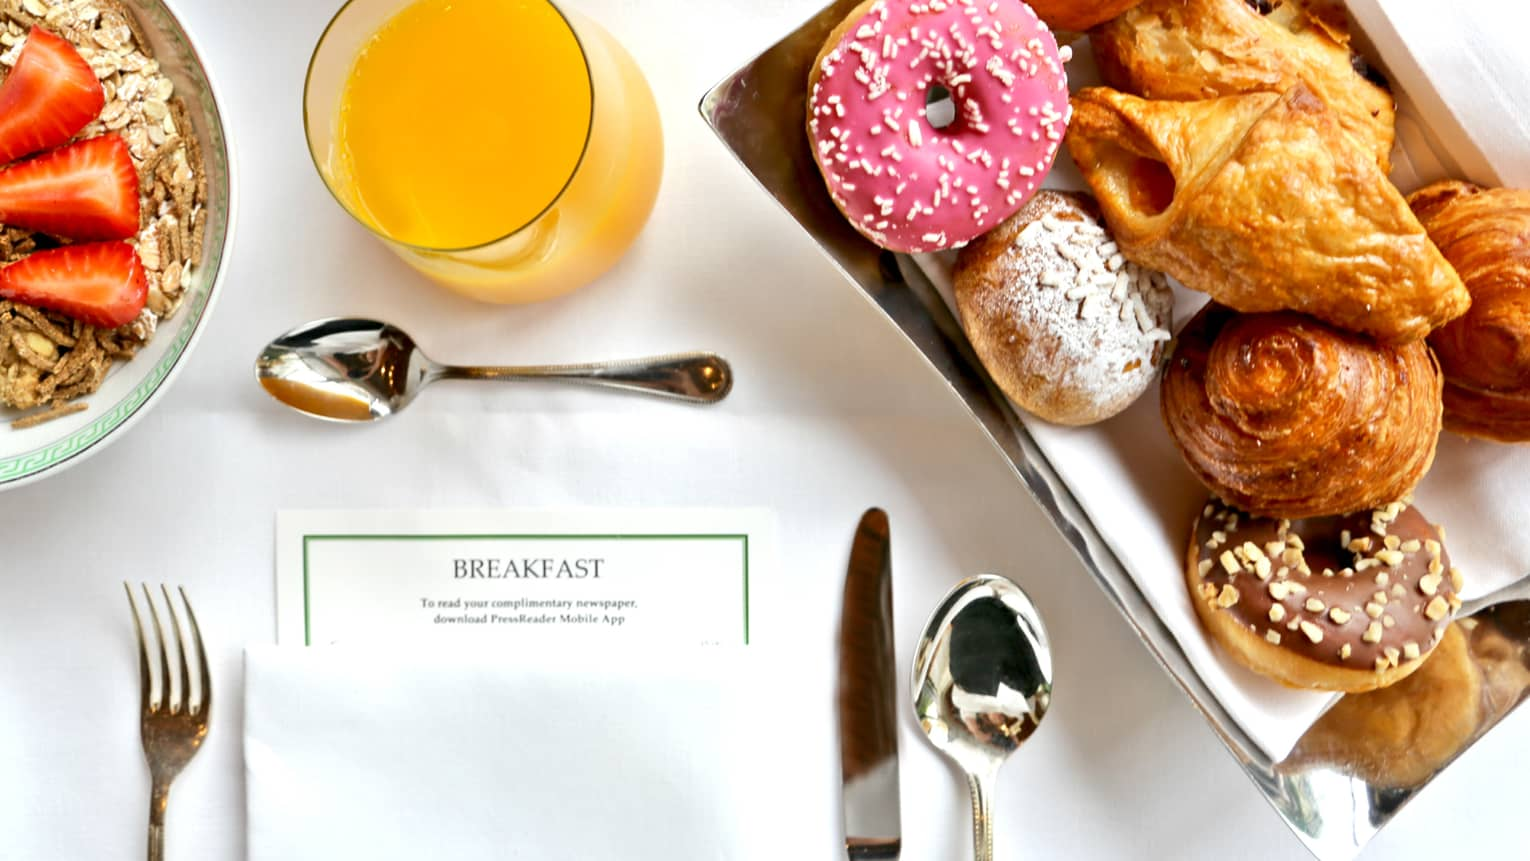 Aerial view of in-room breakfast table with menu, tray with pastries, doughnut with pink icing, orange juice